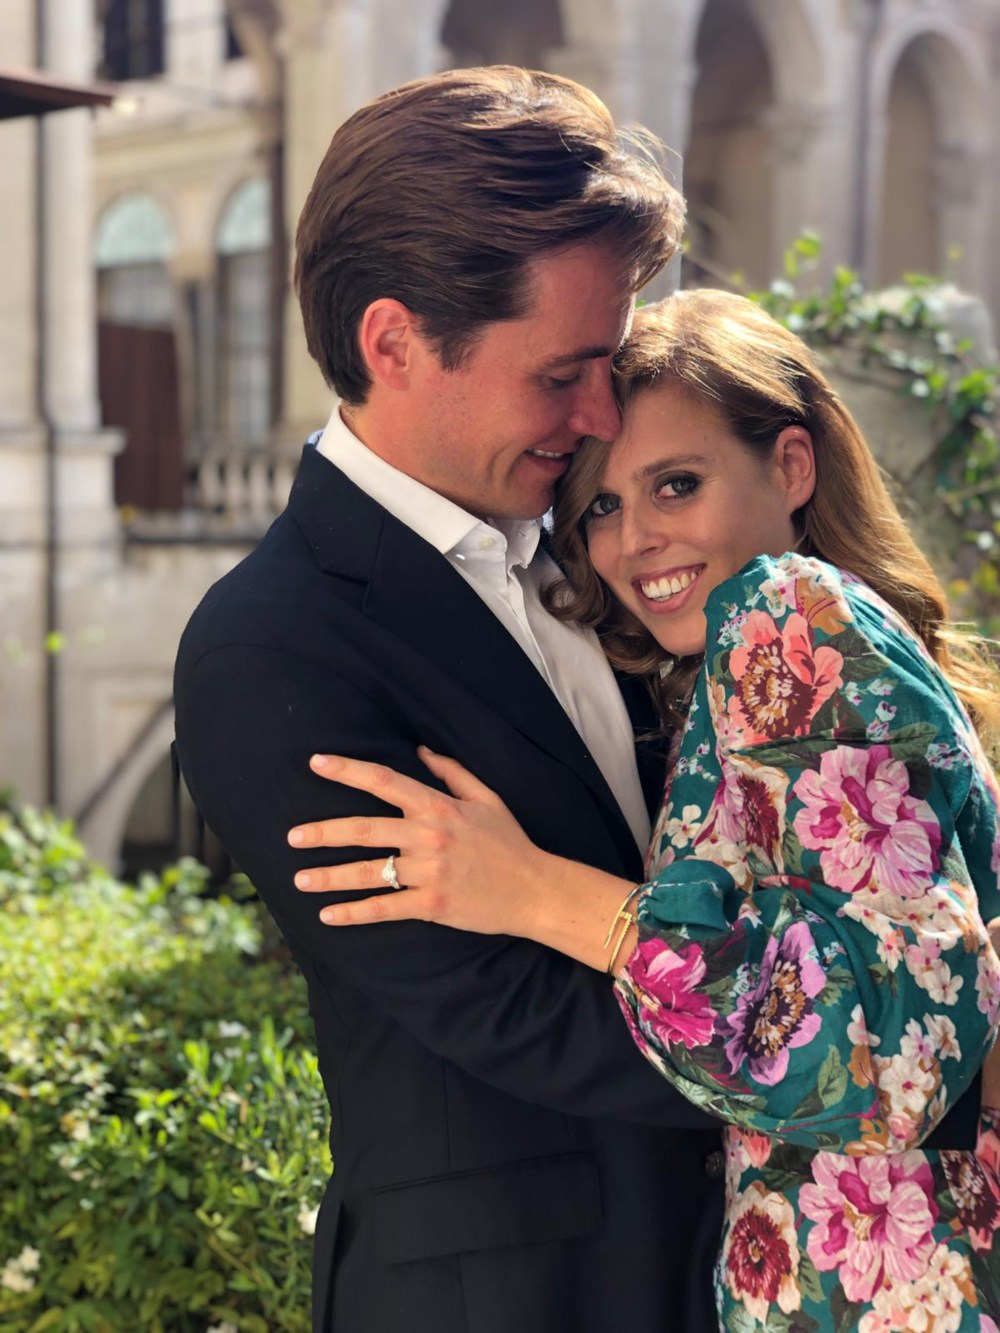 Princess Beatrice will will be the first princess in the Queen's family to become a step-mum when she marries property tycoon Edoardo Mapelli Mozzi next year